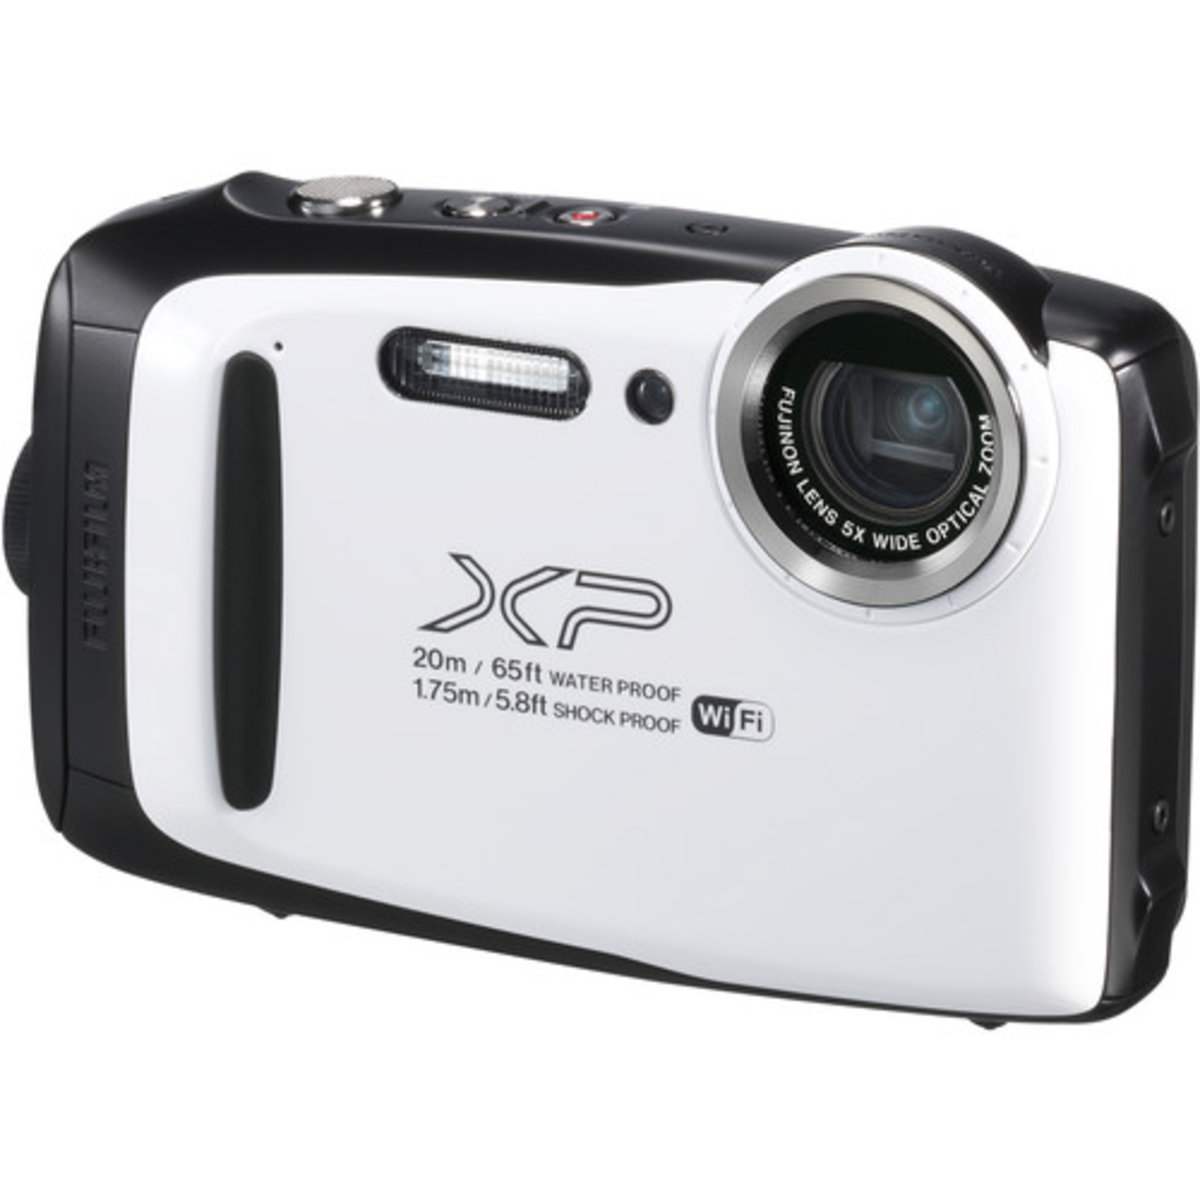 FinePix XP130 Digital Camera - [White] - Parallel imported